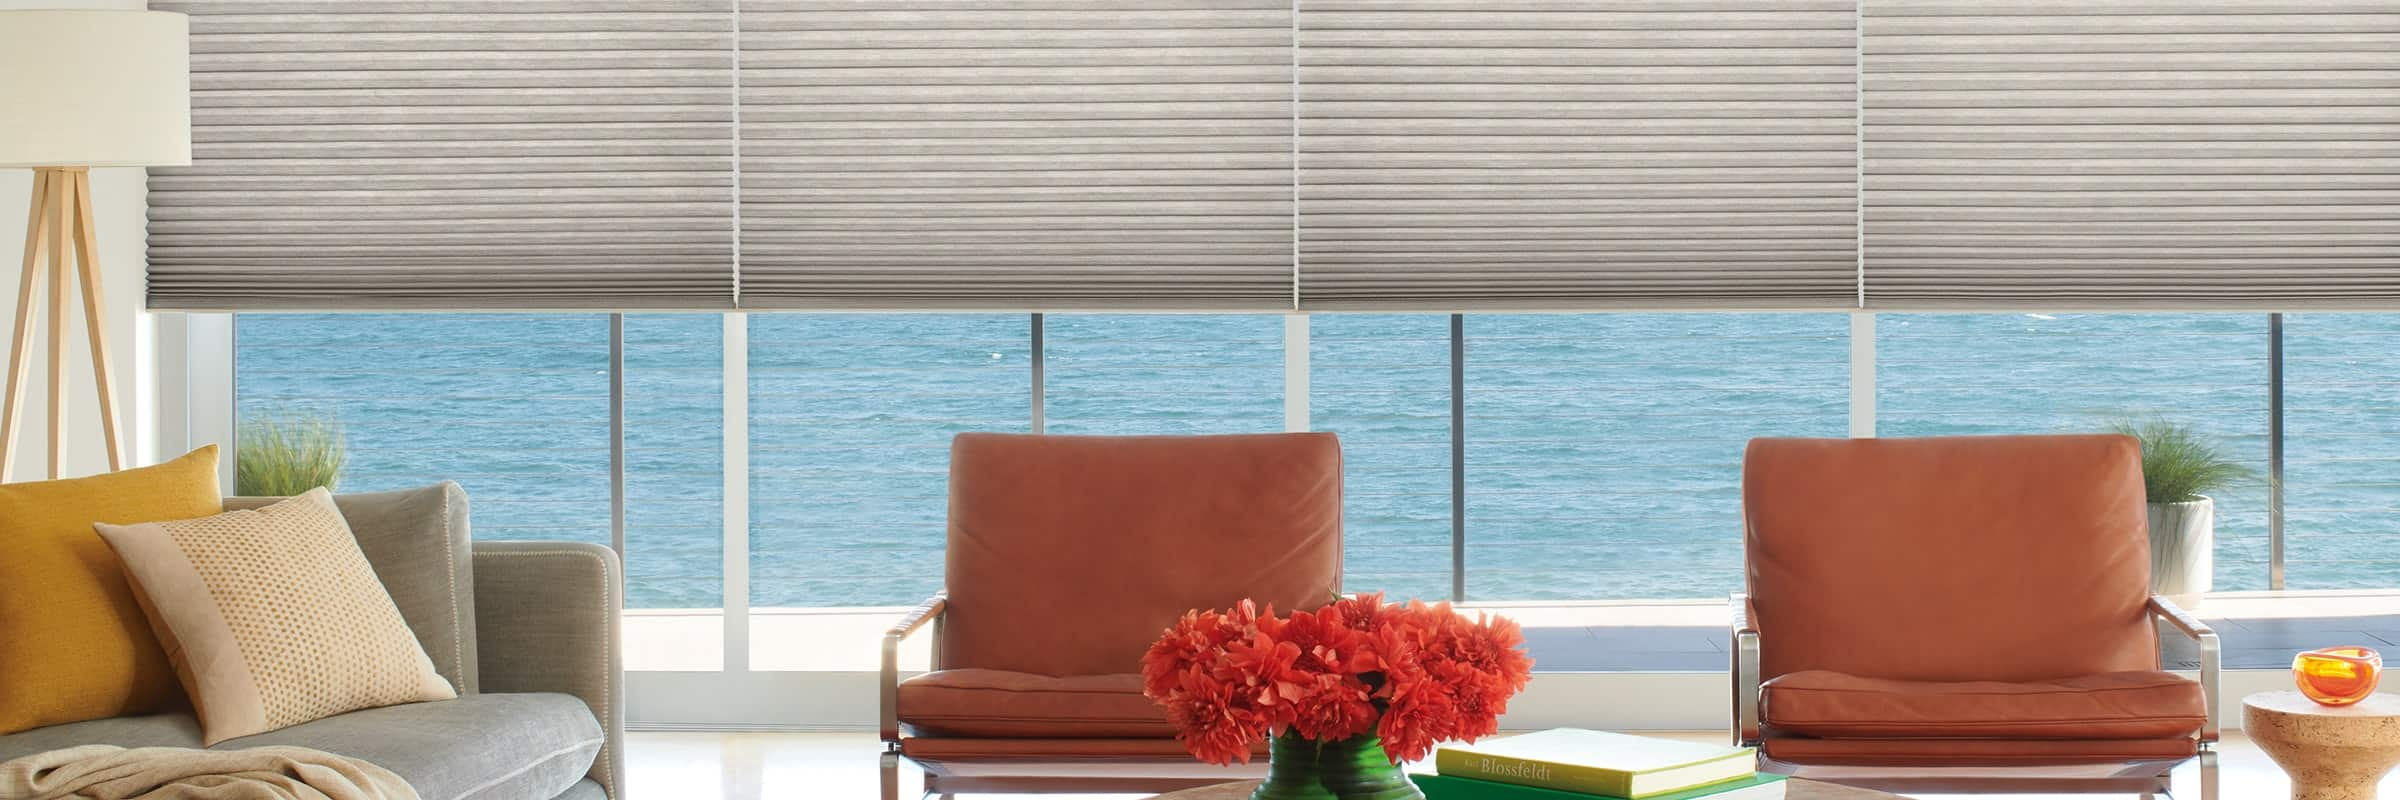 honeycomb-blinds-alustra-duette-in-alexa-04